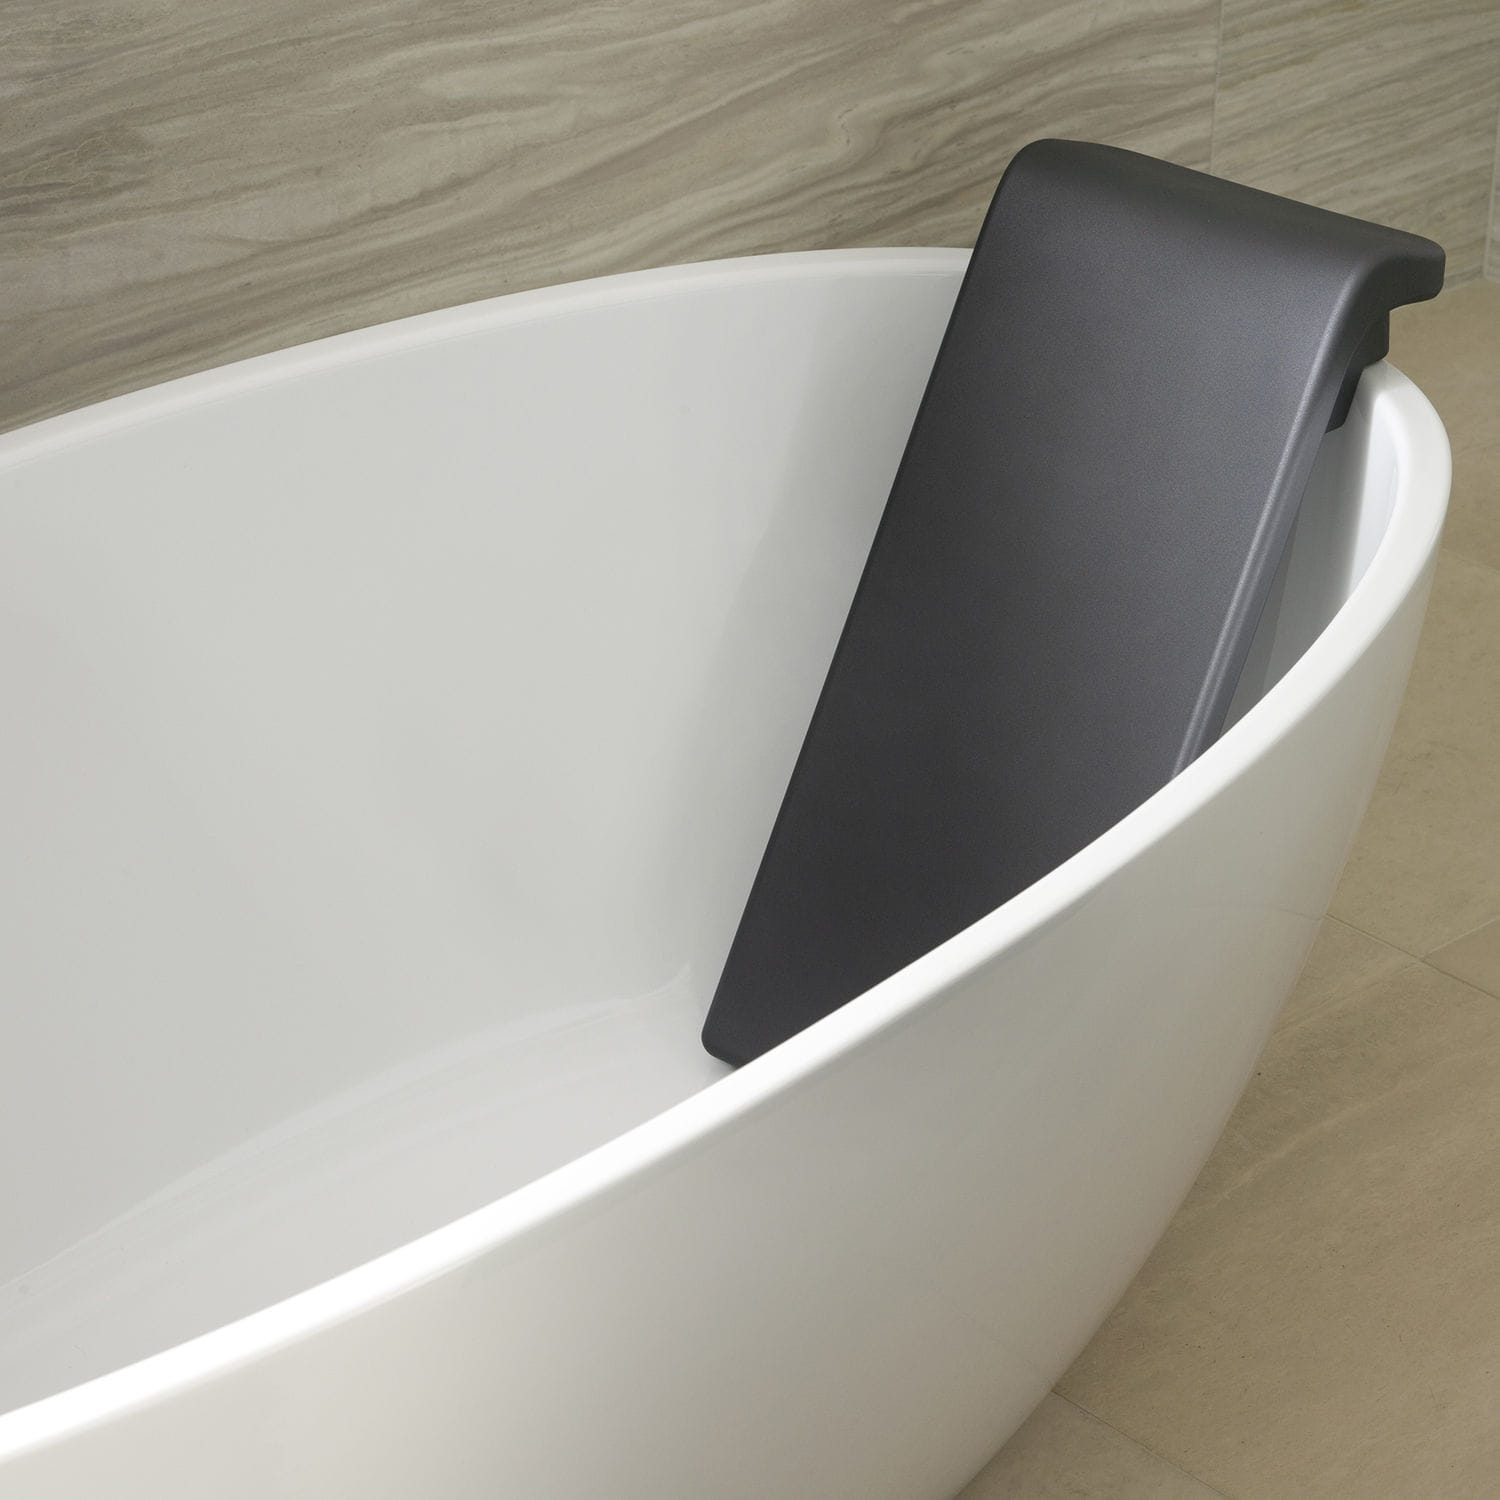 Bathtub backrest headrest - Bathroom Backrest Barcelona